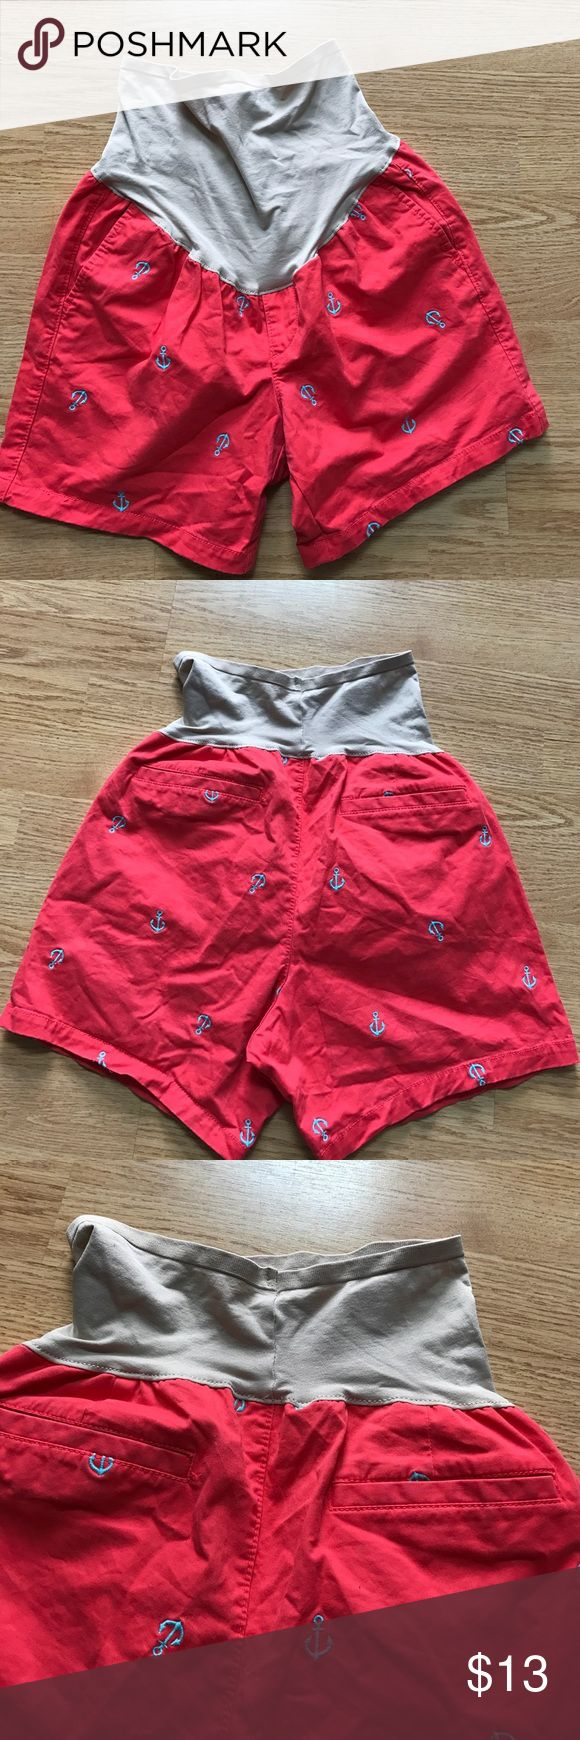 Old Navy coral maternity anchor shorts with panel Size 6. Coral shorts with blue embroidered ⚓️ anchors Old Navy Shorts